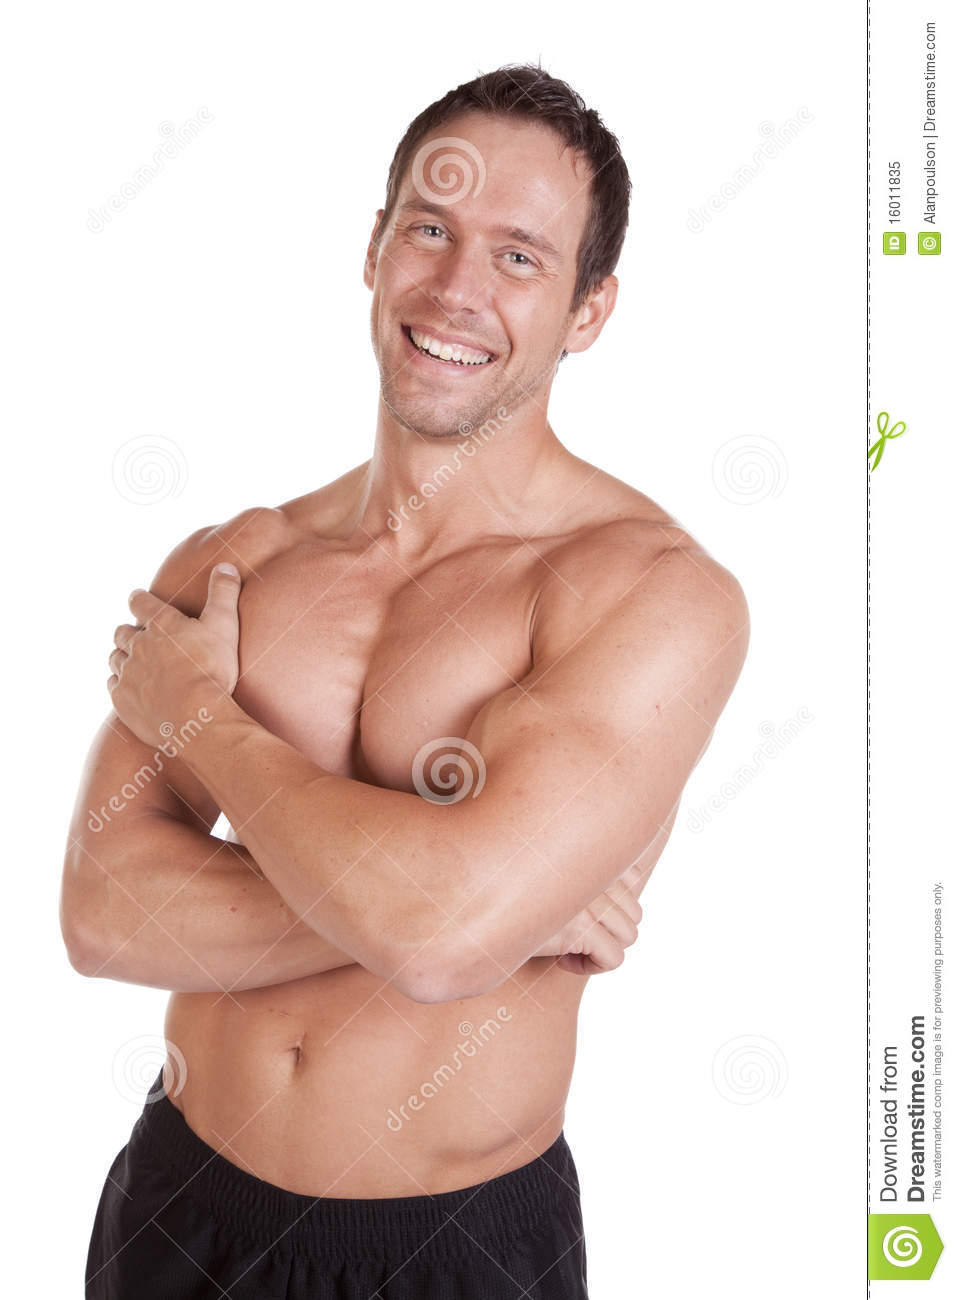 Man With Muscles Arms Crossed Stock Image - Image of caucasian ...